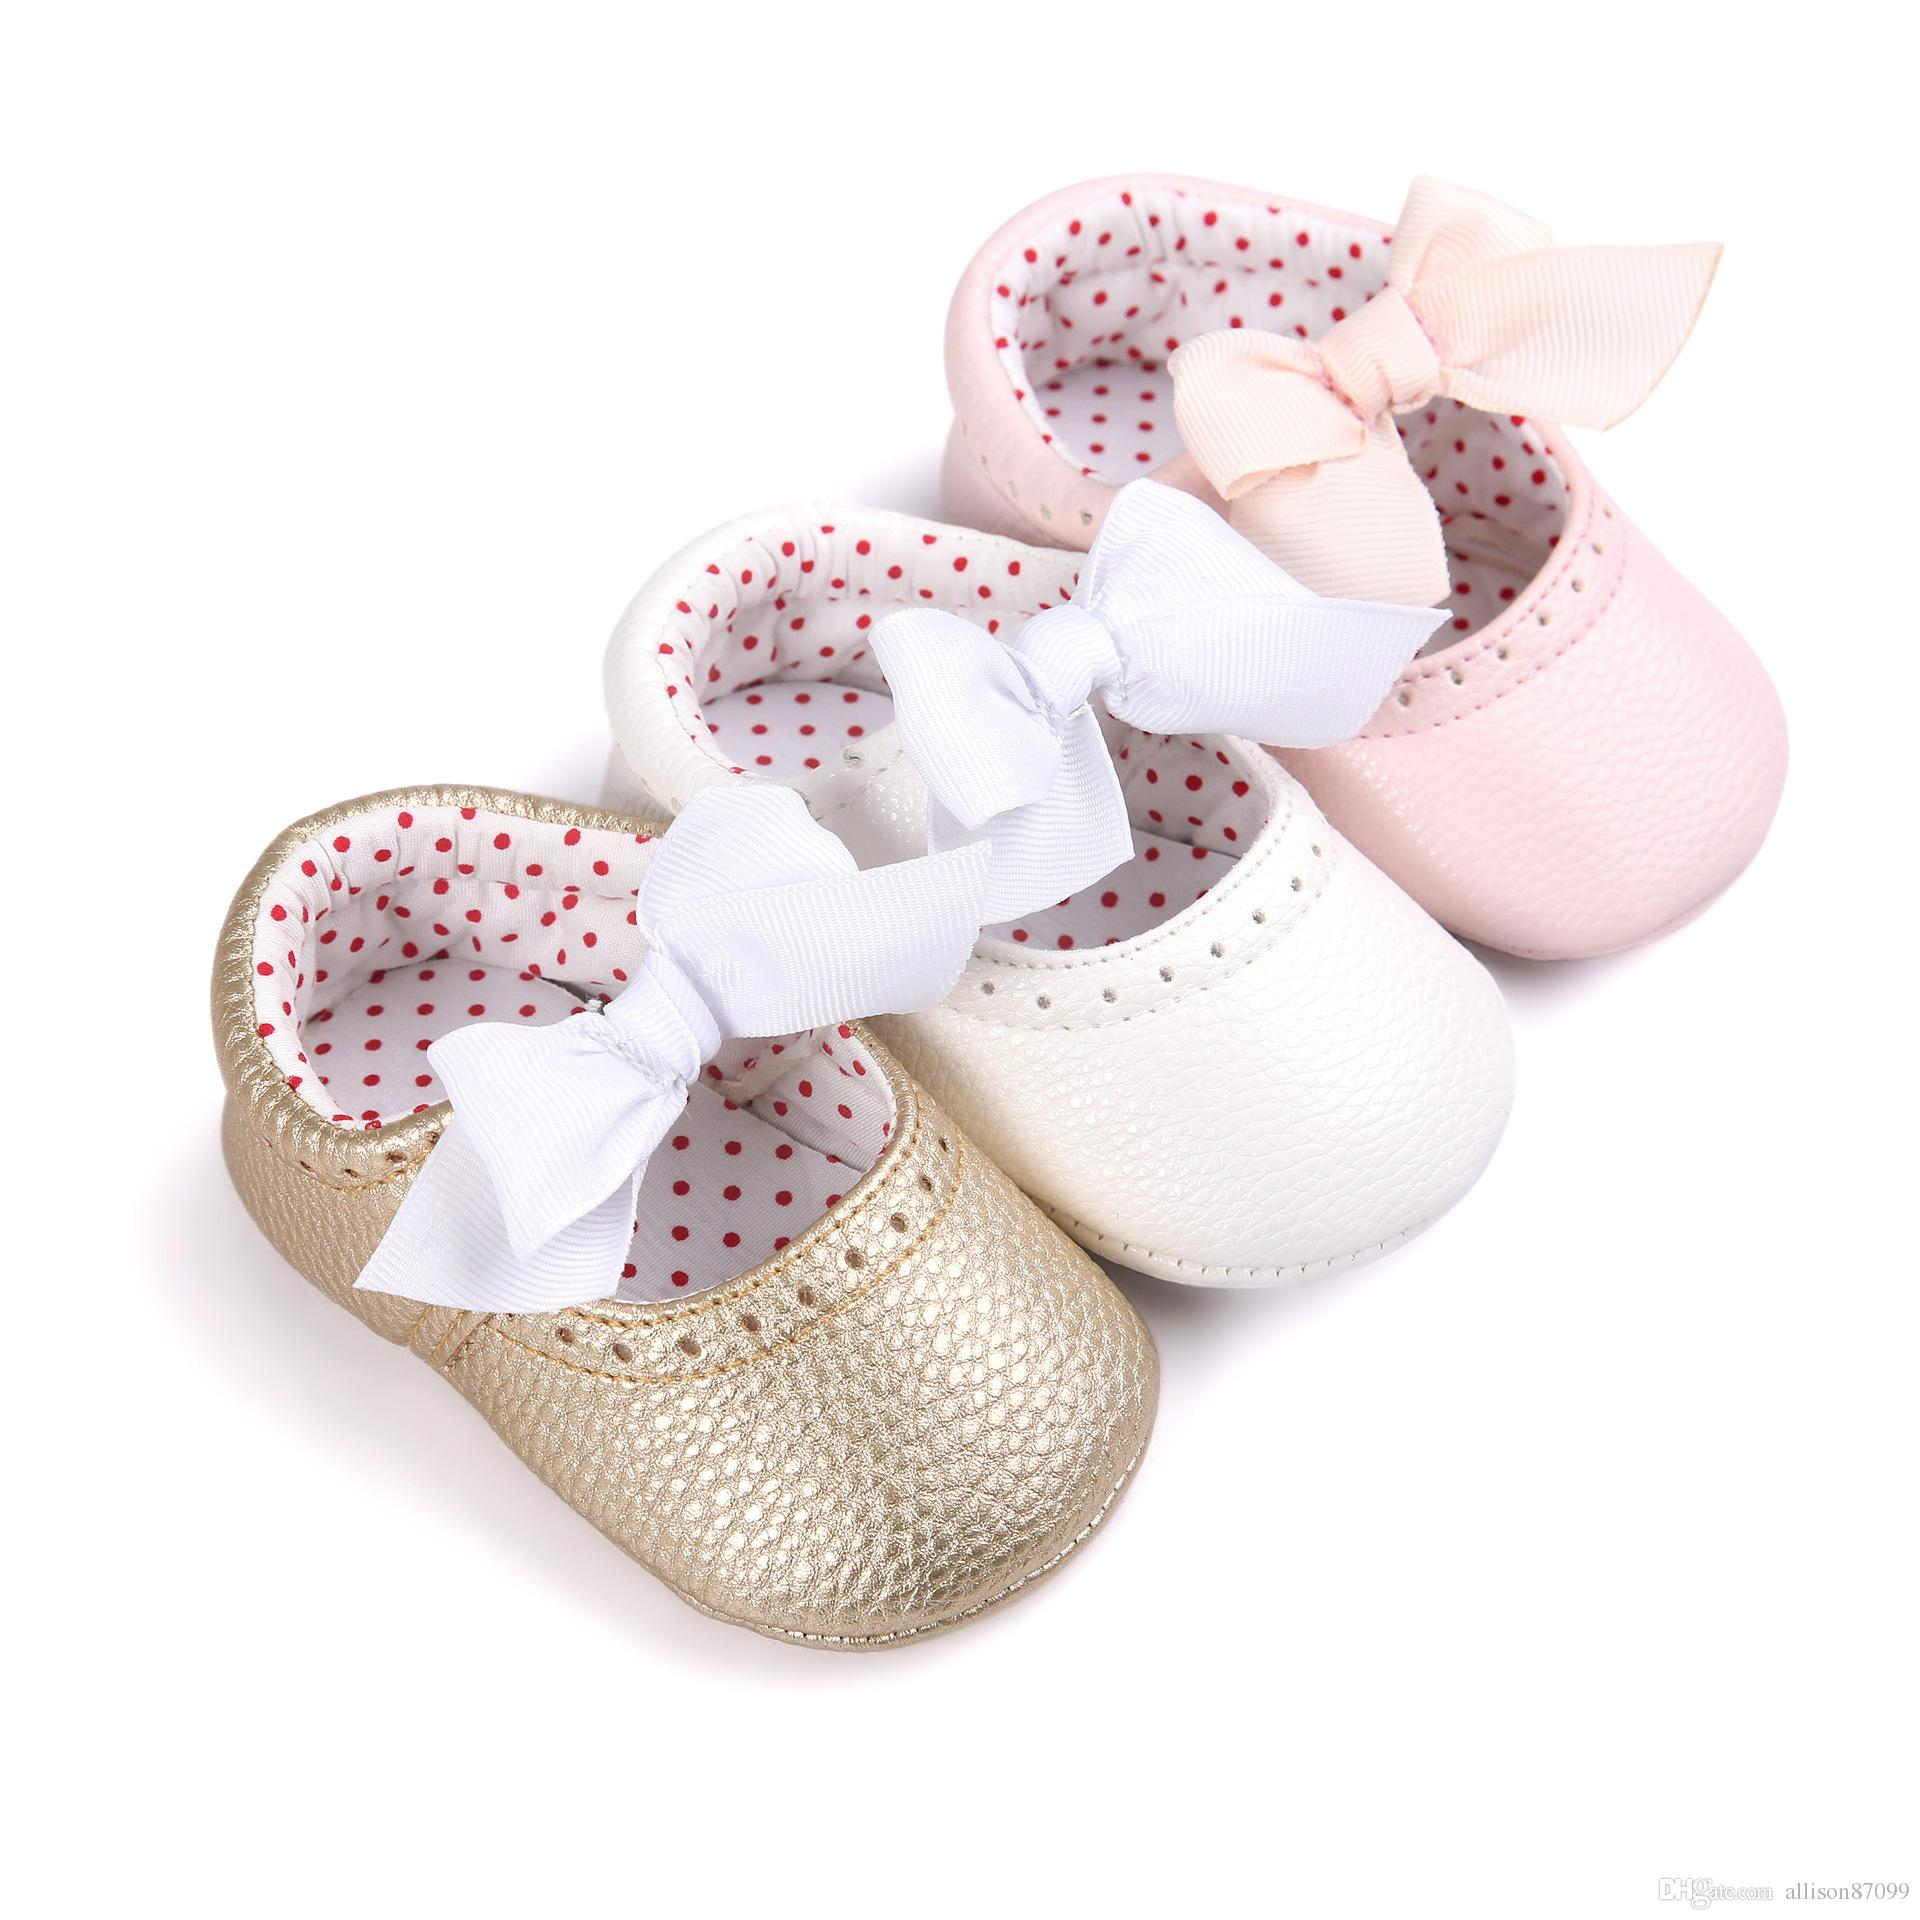 454a8c4d9ba92 Infants shoes Baby girls shoes Bows Princess party shoes Birthday Soft dots  sweet Baby First Walkers 0-1 year 2017 Spring new DHL FREE